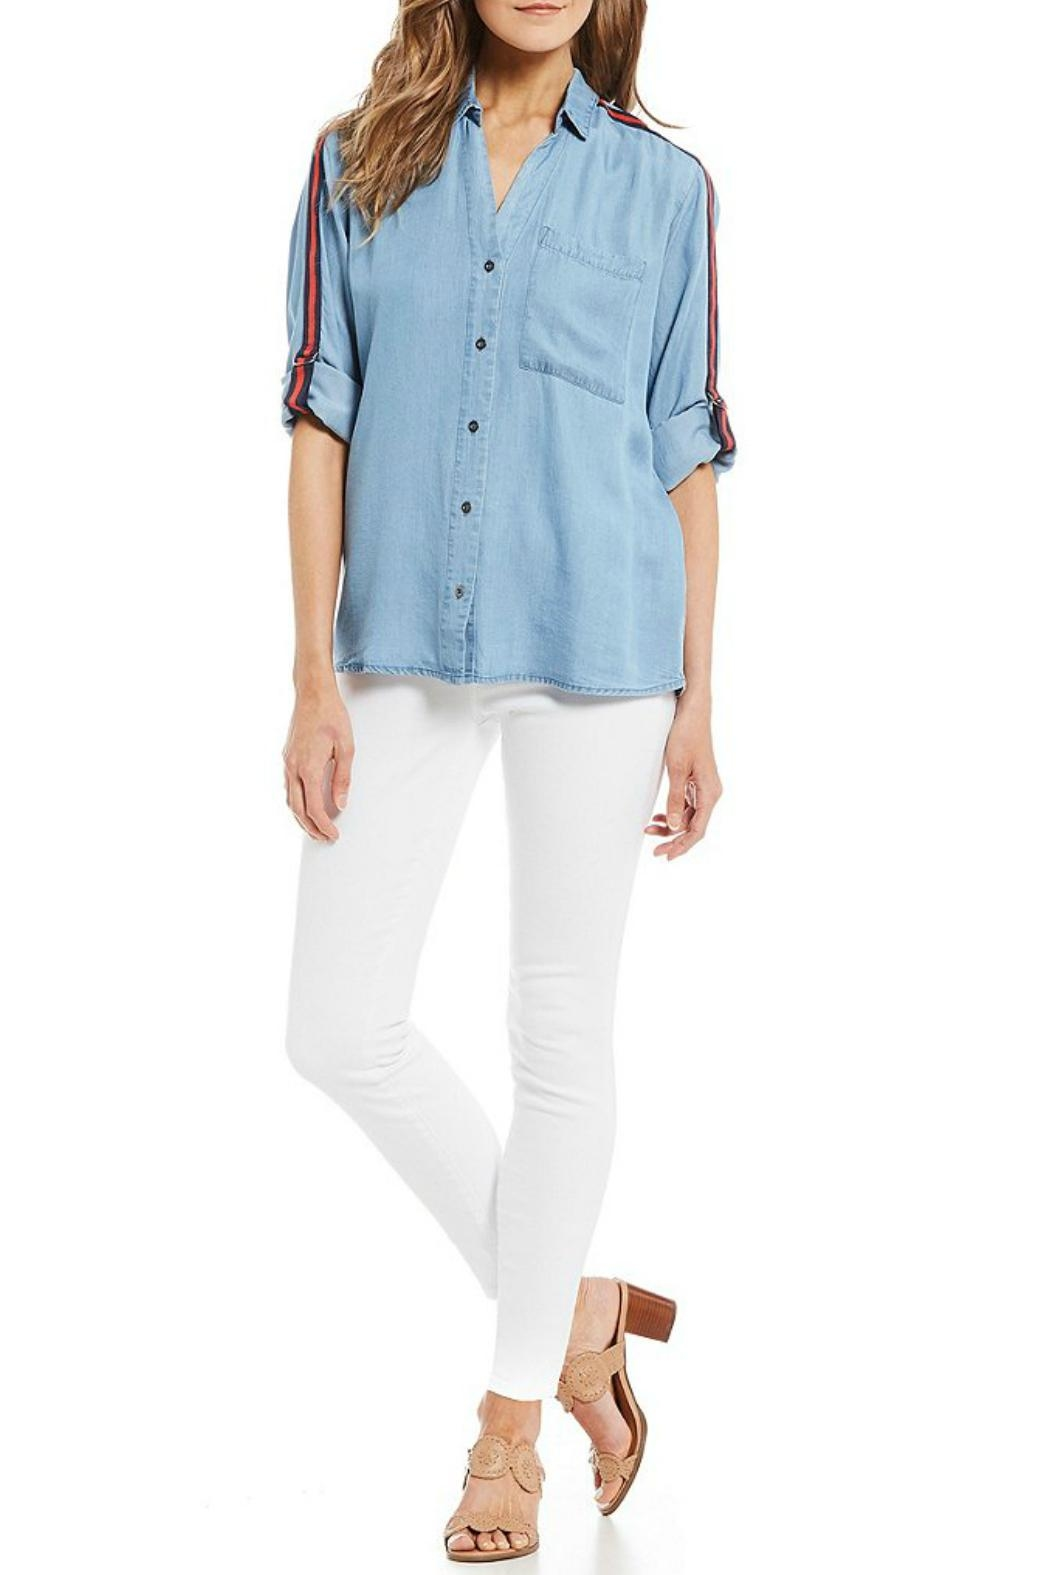 Kut from the Kloth High-Rise Ankle-Skinny Jeans - Side Cropped Image